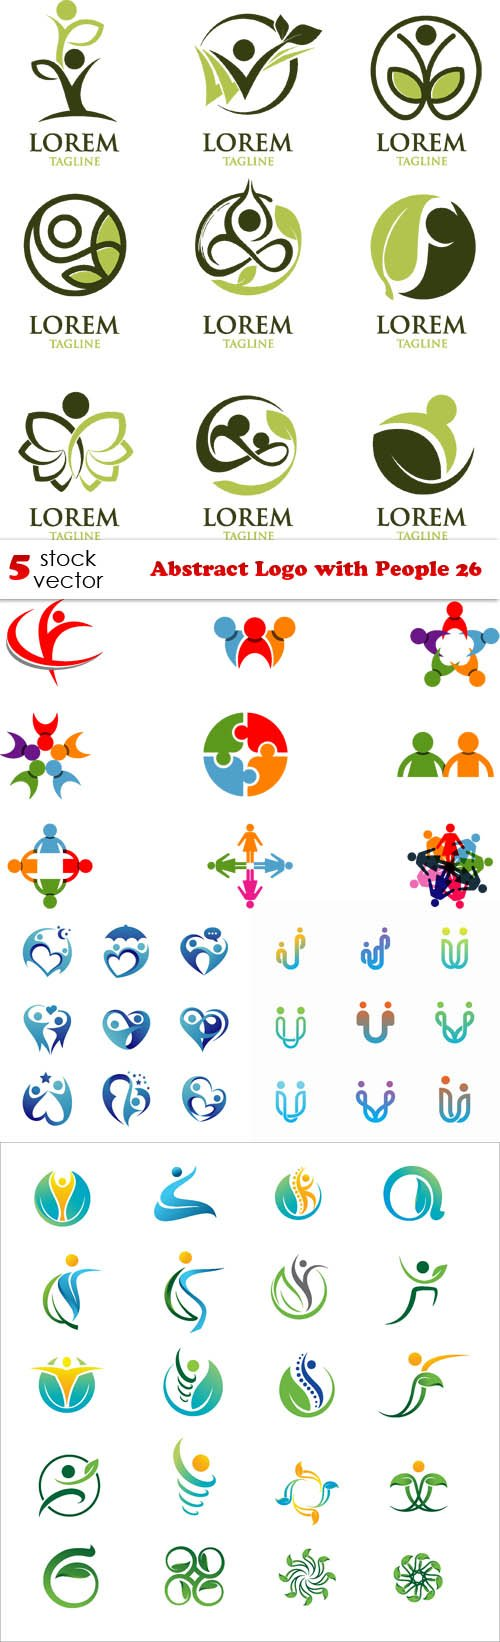 Vectors - Abstract Logo with People 26